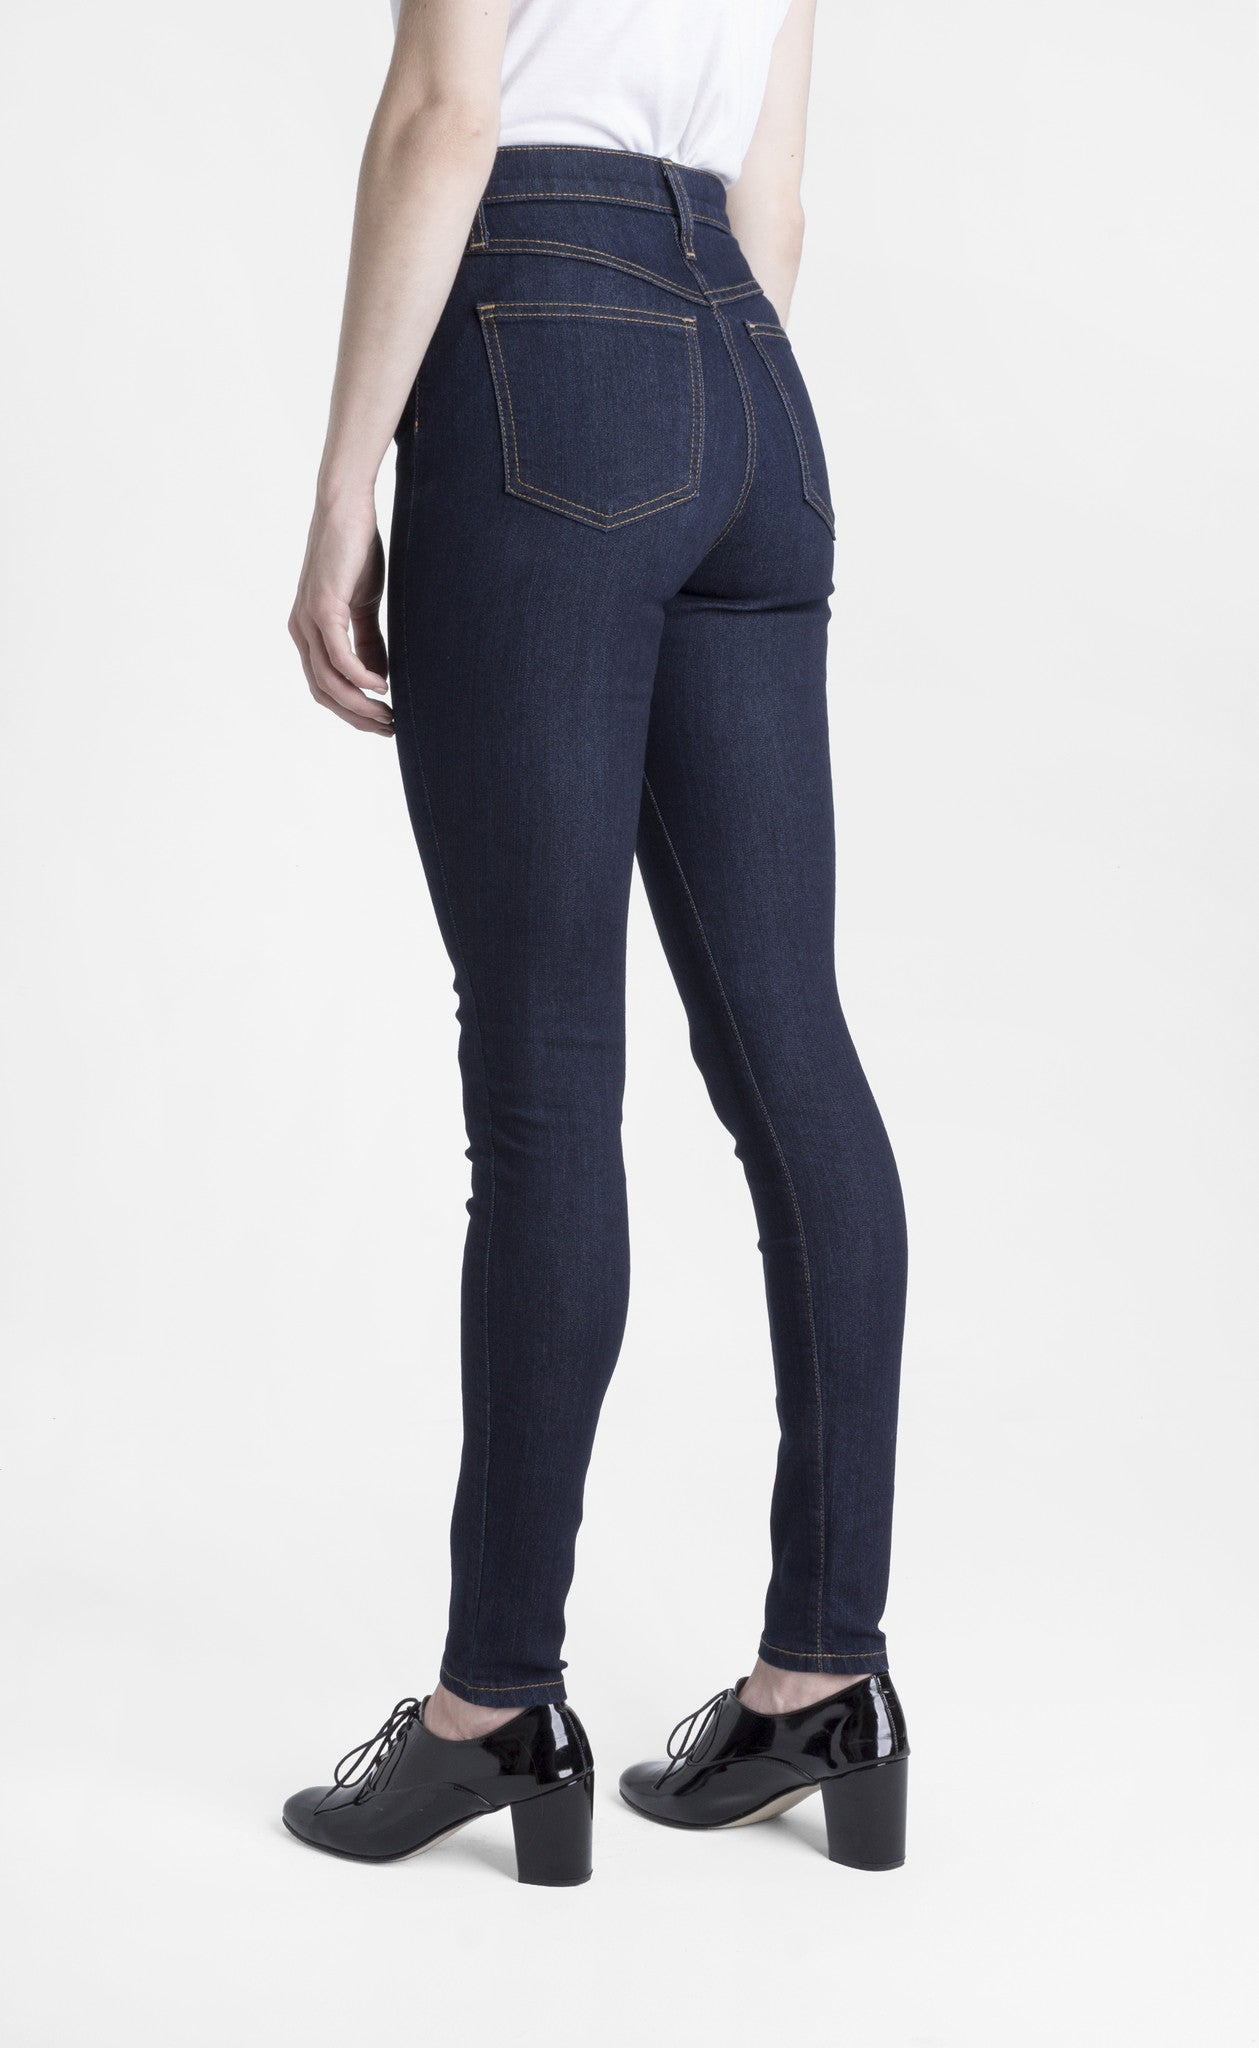 High Waist Bad Reputation Jeans by Iris Denim